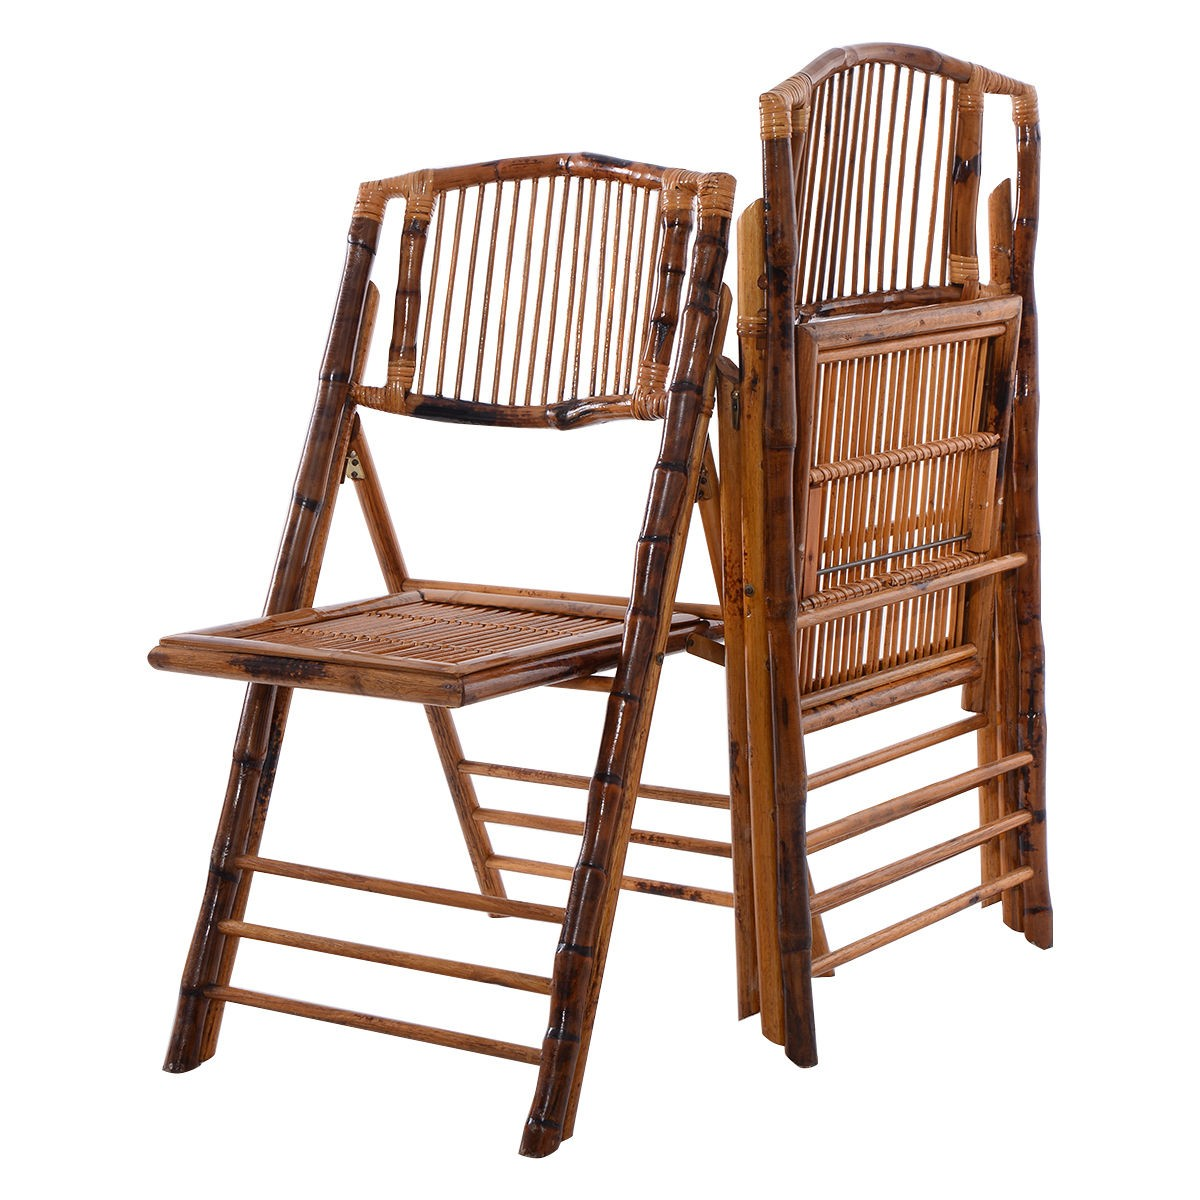 Bamboo Outdoor Chairs: New Bamboo Folding Chairs Patio Garden Wedding Party